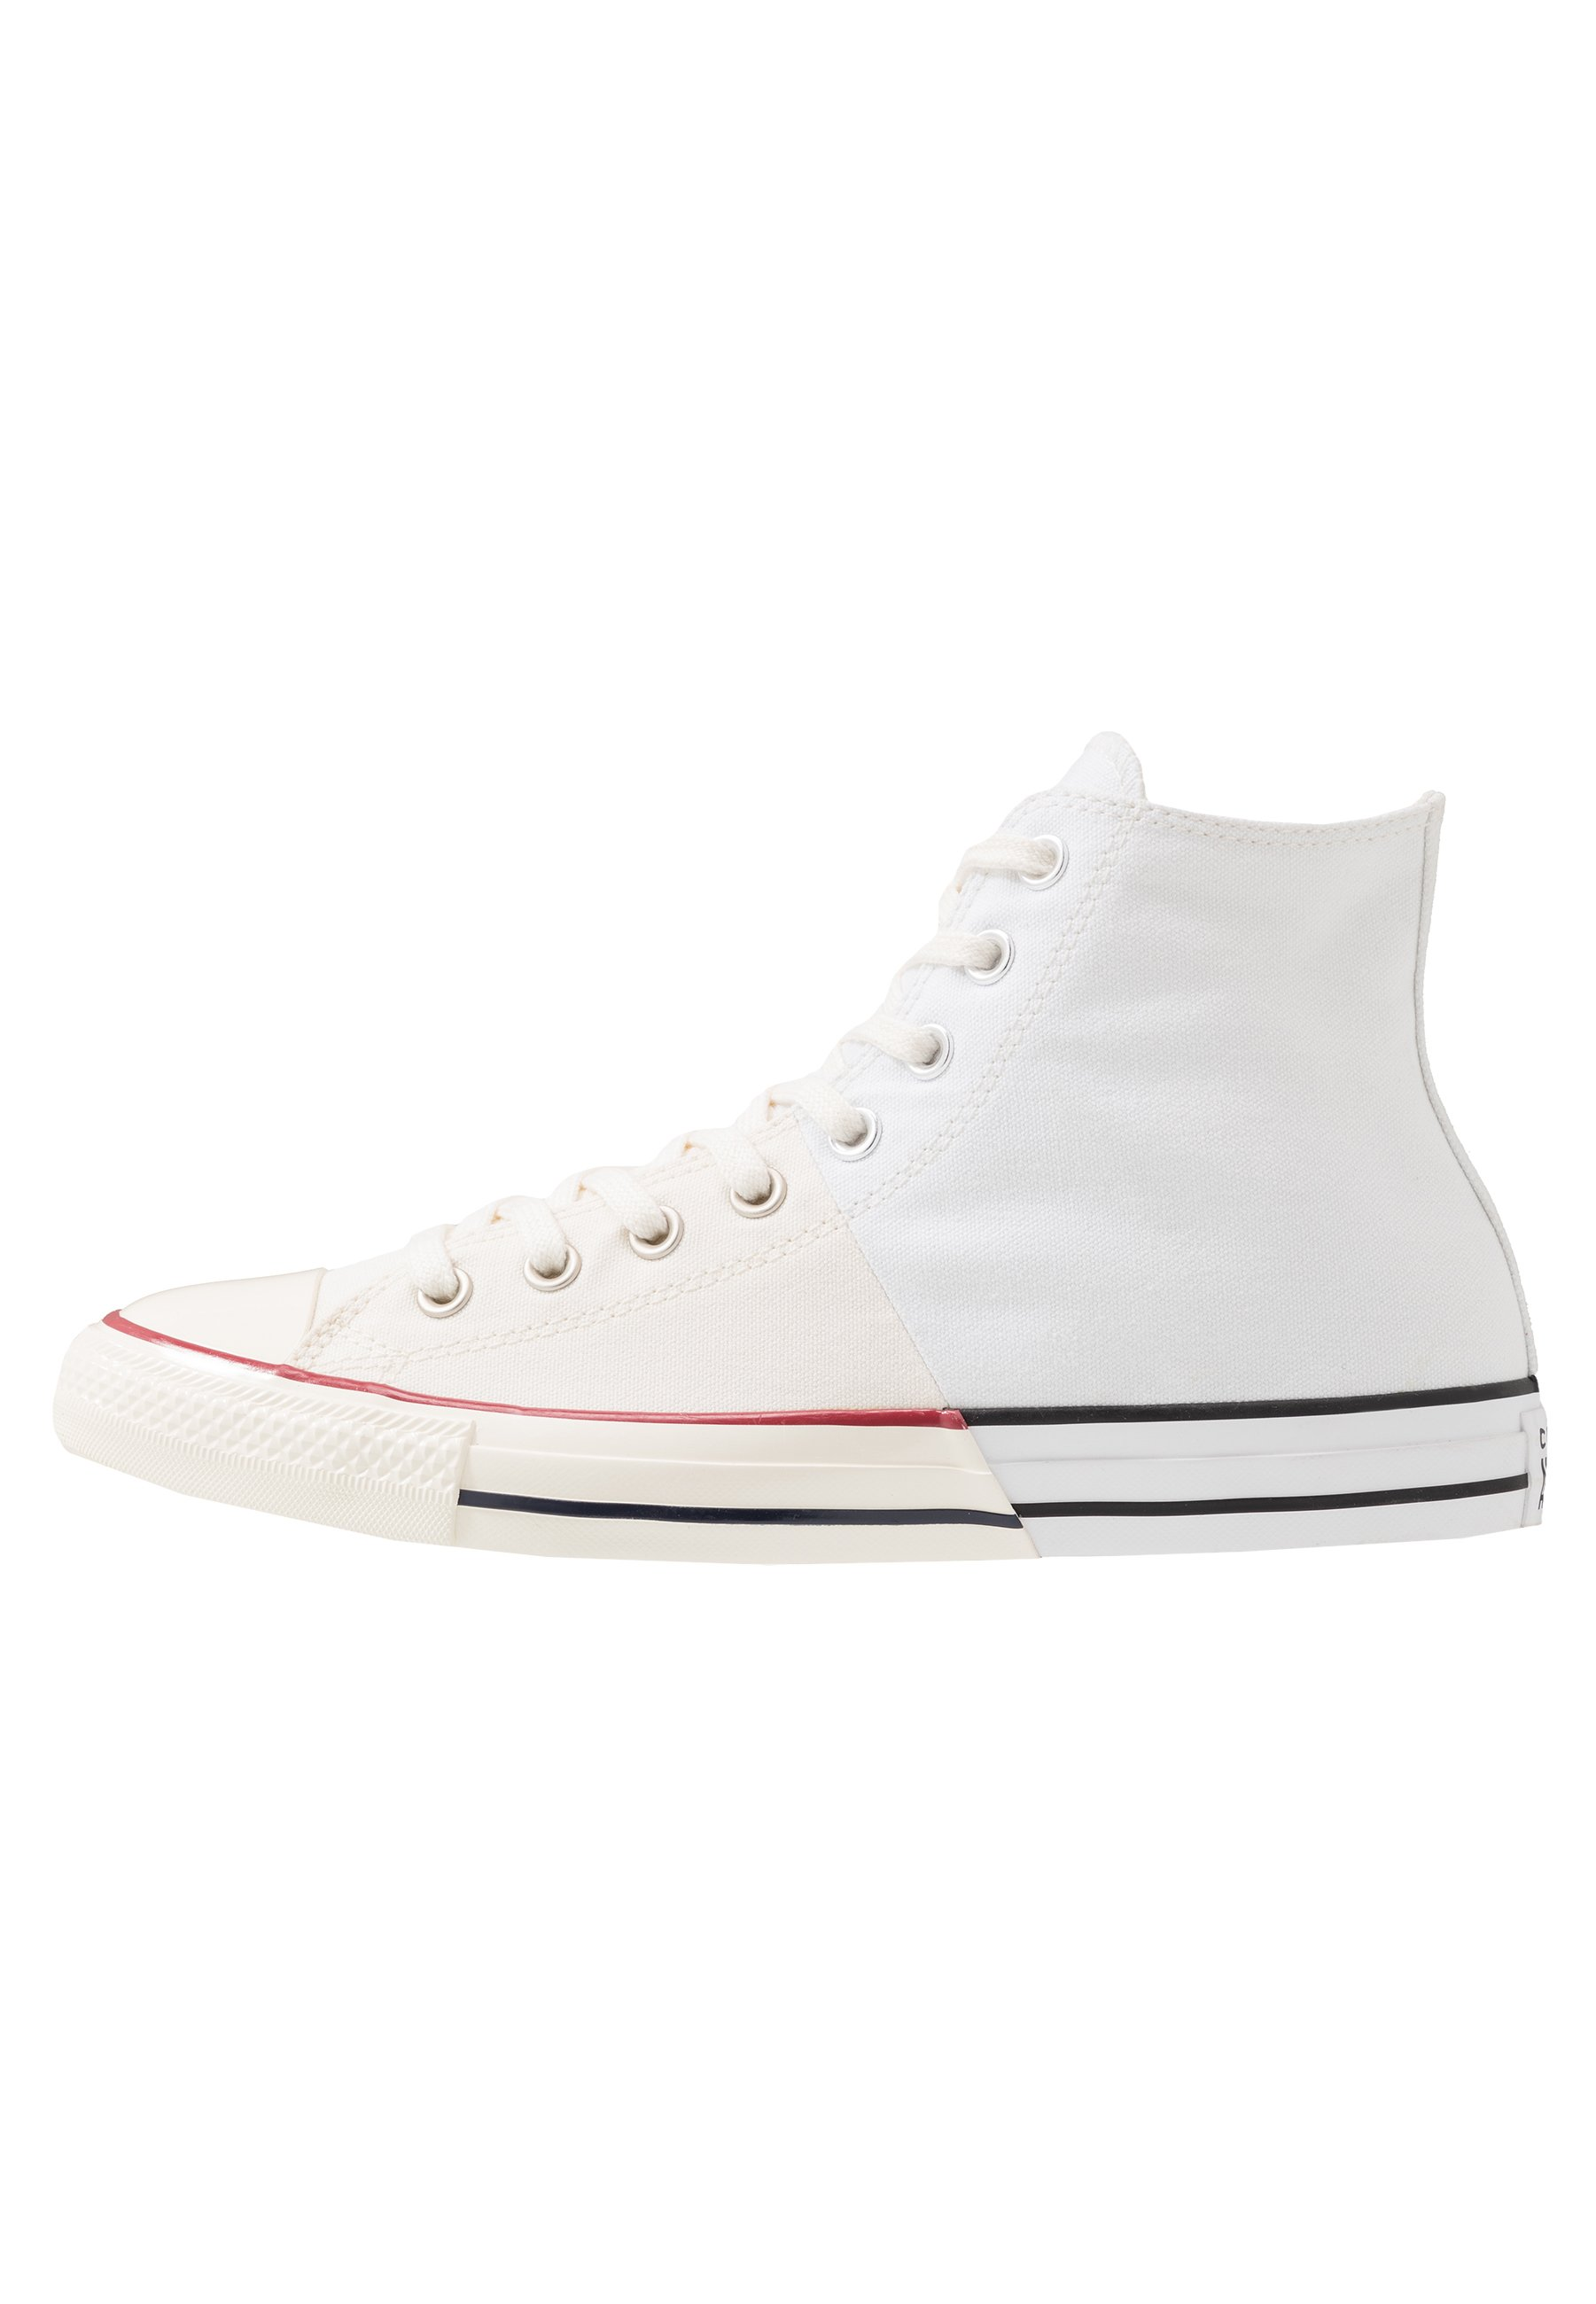 CHUCK TAYLOR ALL STAR Sneakers alte vintage whitewhiteegret